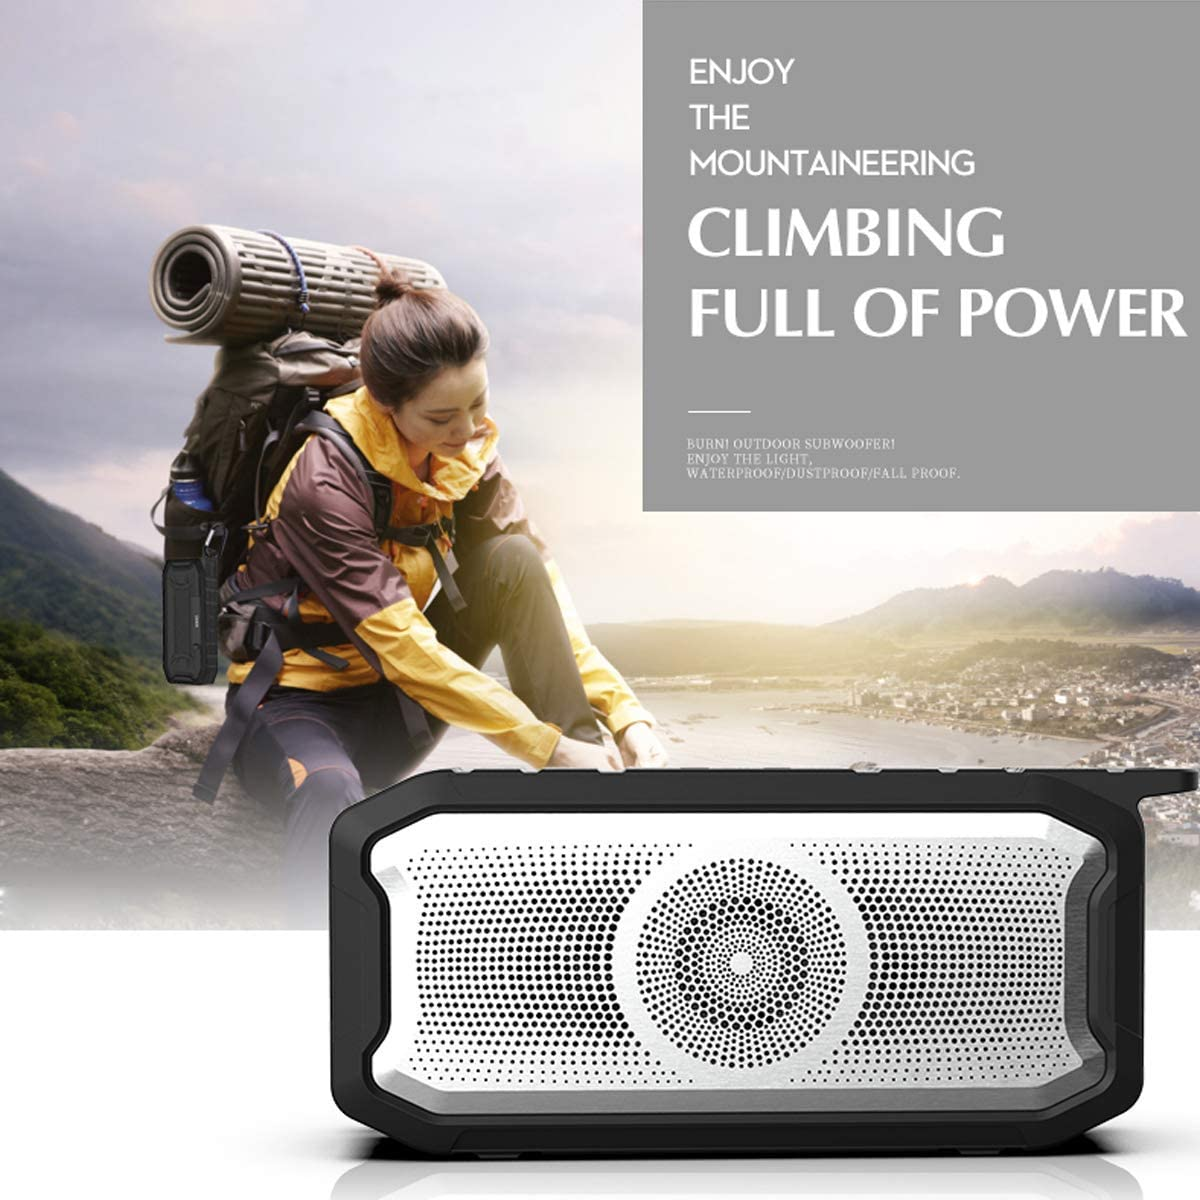 Green Encorsder IPX7 Waterproof Bluetooth Speaker with Enhanced Bass /& Built-in Microphone for Outdoor Sports,Hiking,Travel Bluetooth Speakers